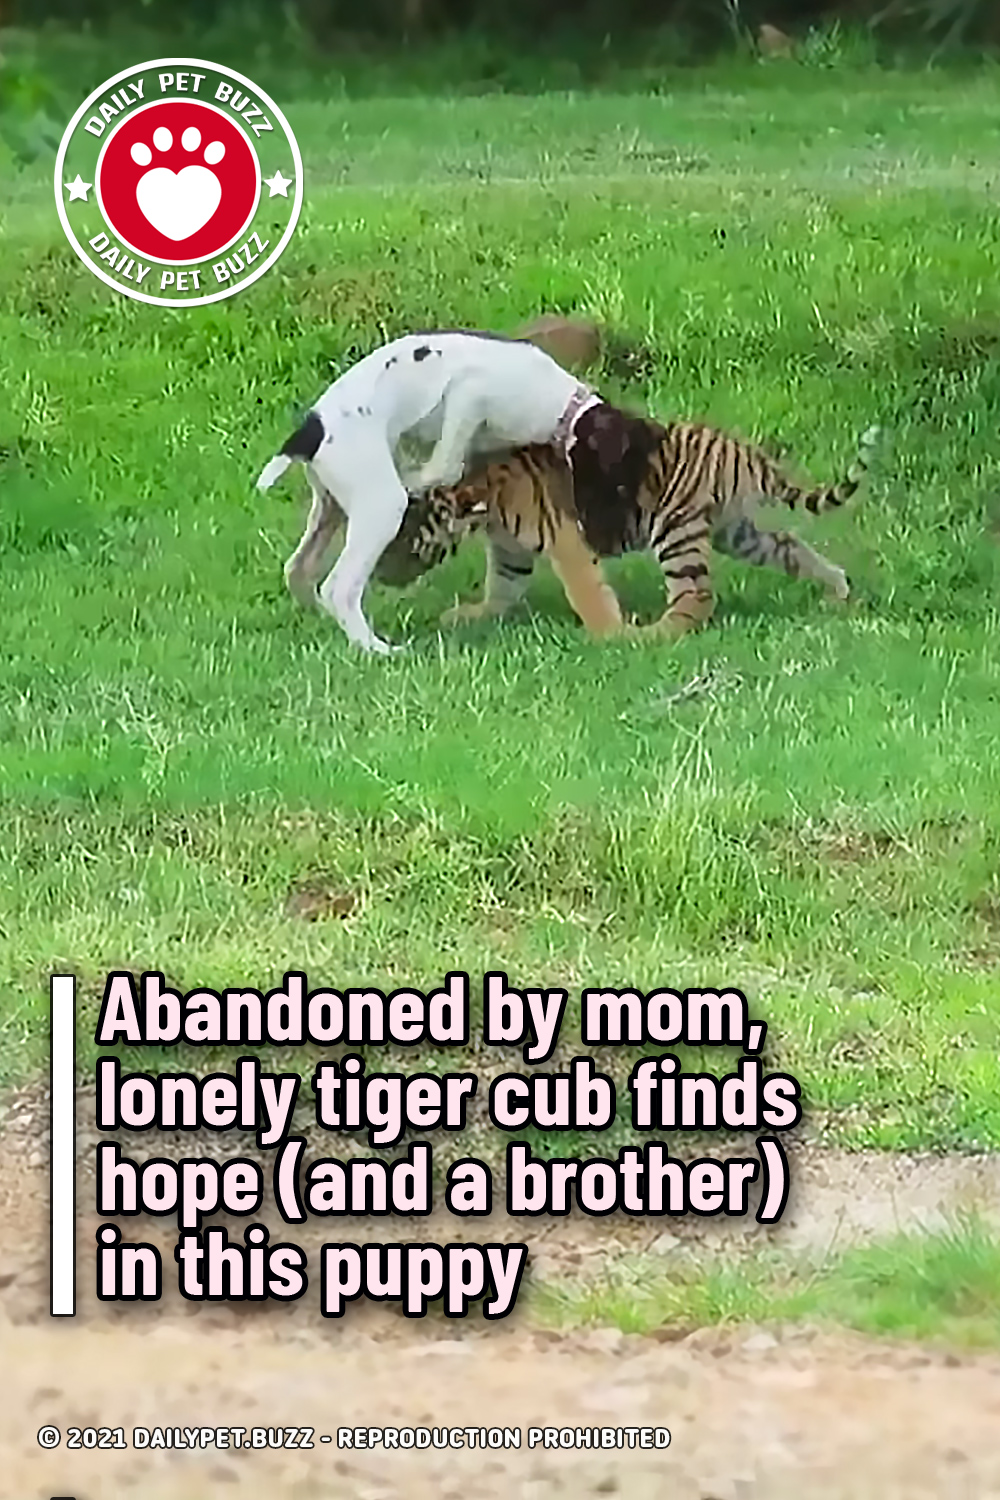 Abandoned by mom, lonely tiger cub finds hope (and a brother) in this puppy